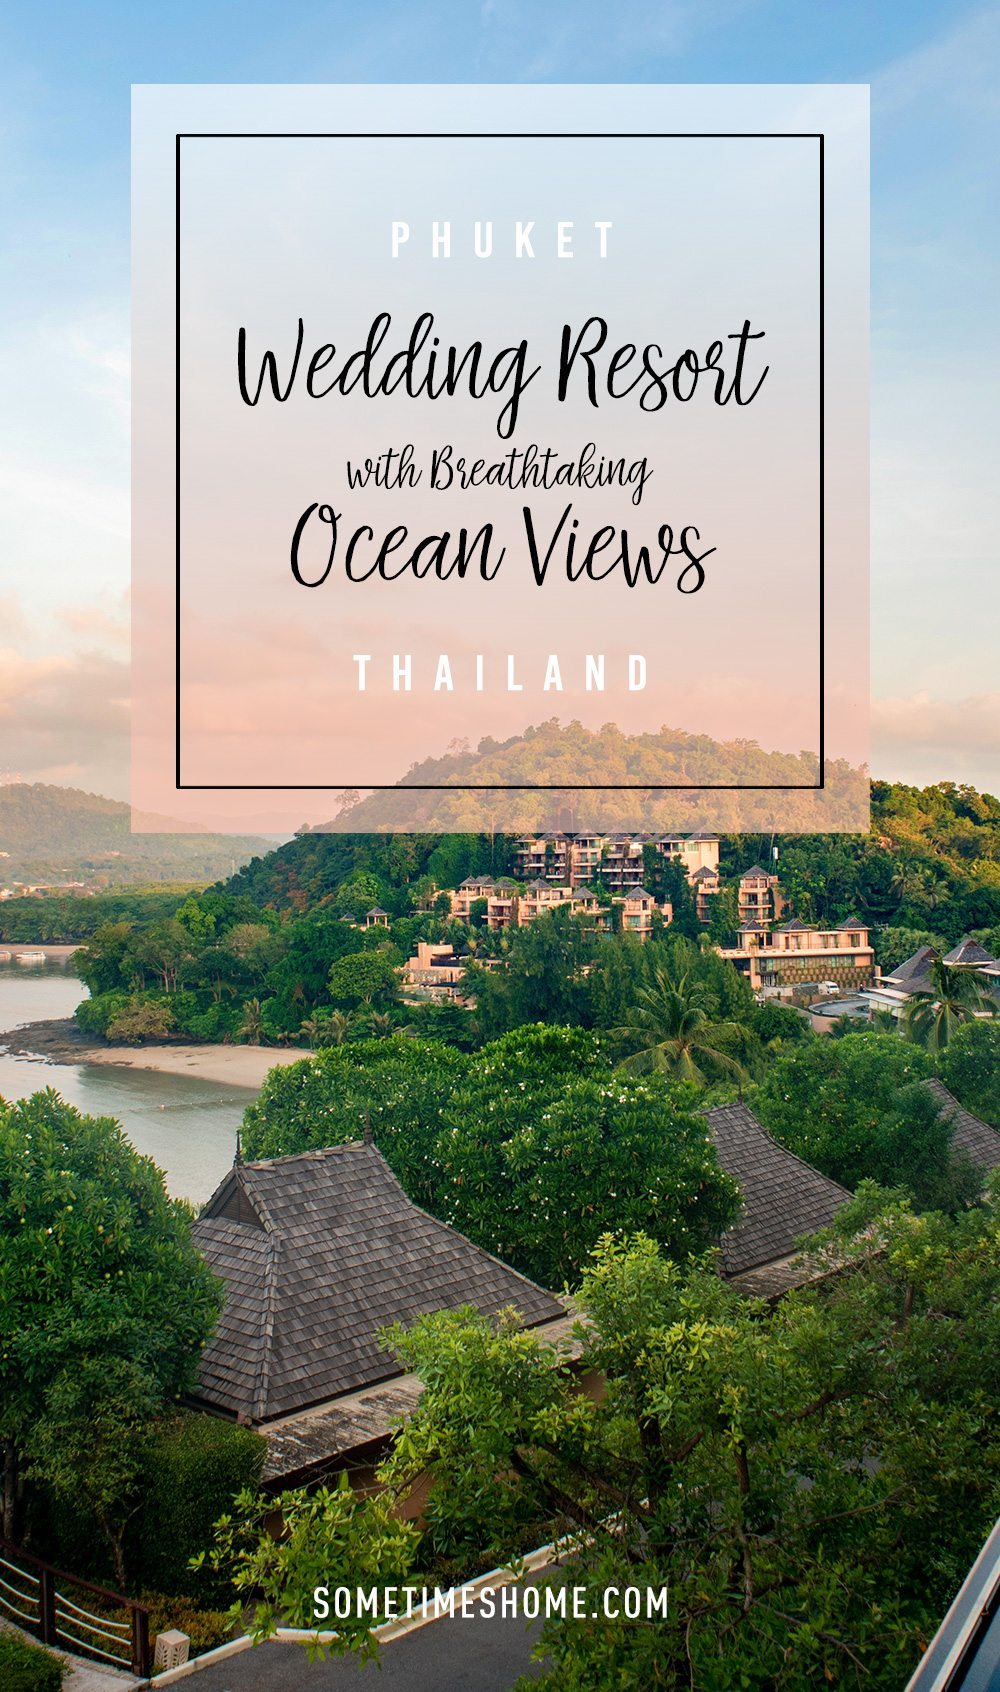 Phuket Wedding Resort with Breathtaking Ocean Views by Sometimes Home travel blog. Westin Siray Bay photos by Mikkel Paige.